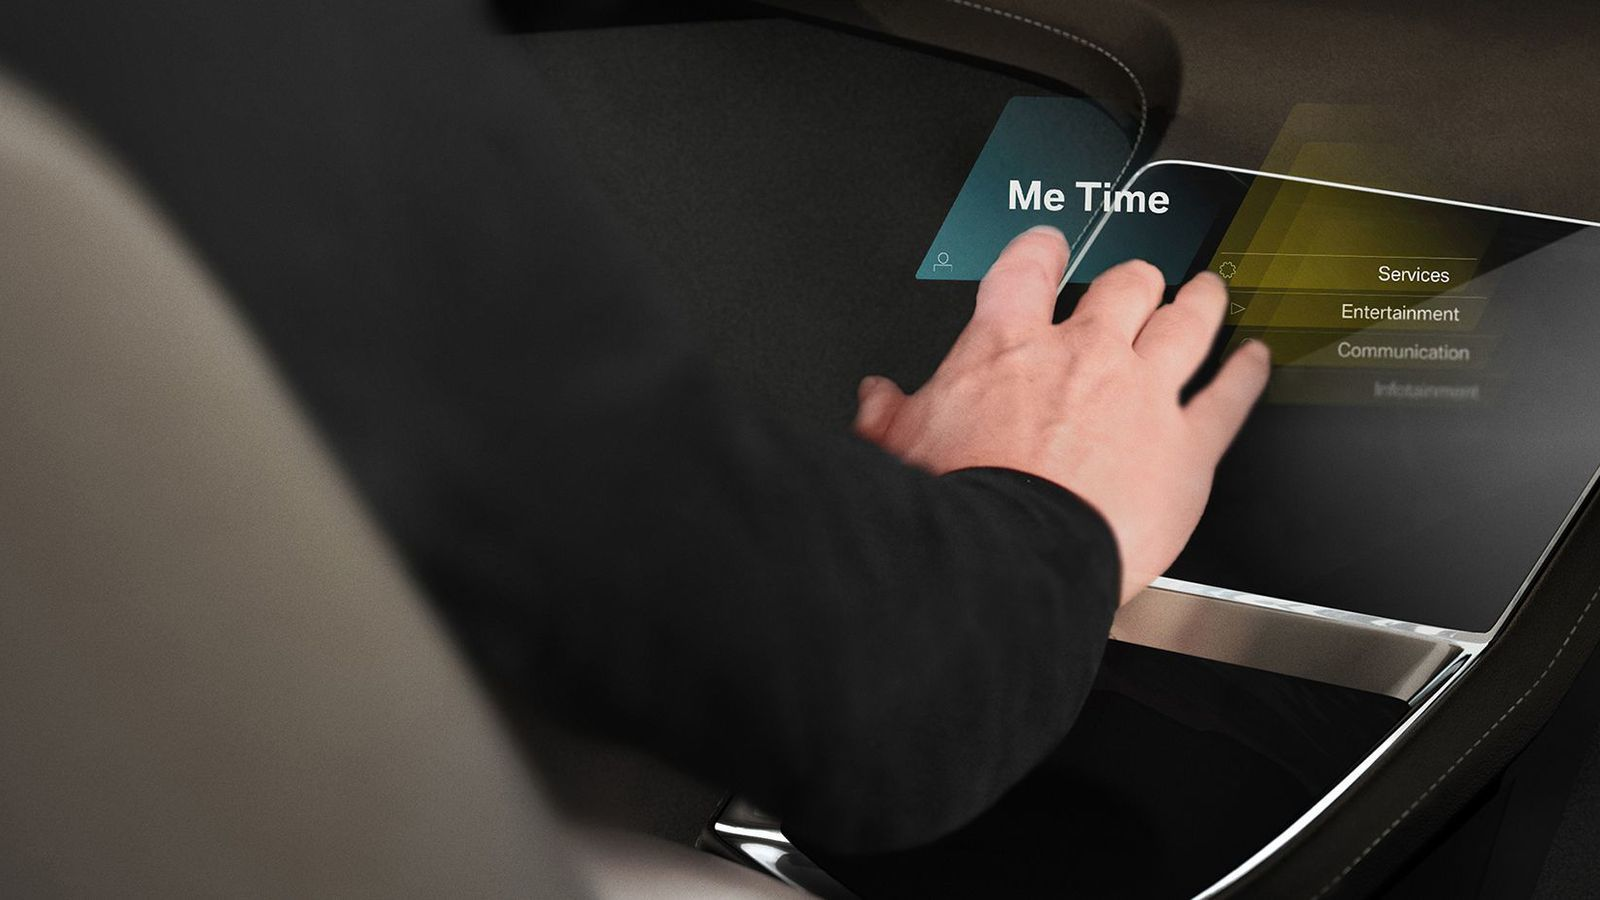 bmw-holoactive-touch-hero.jpg